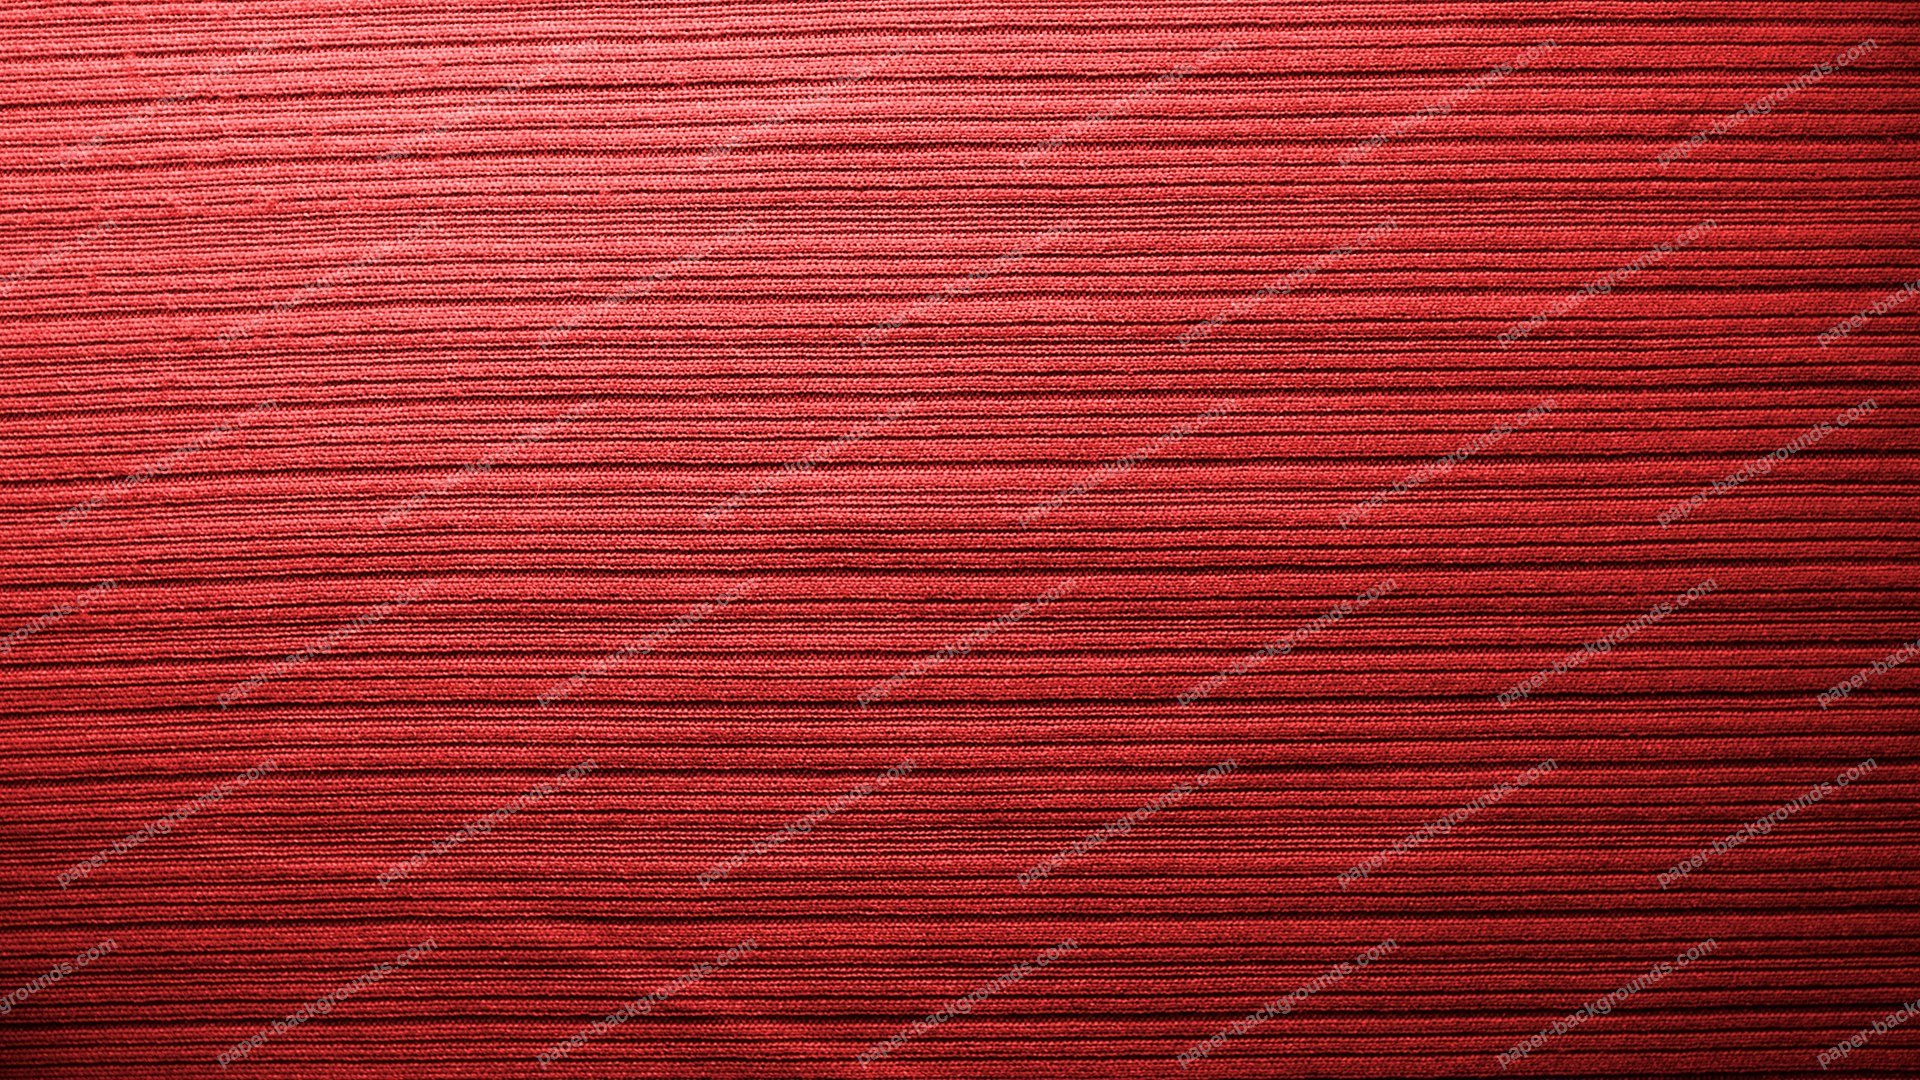 Red Fabric Background With Stripes HD 1920 x 1080p